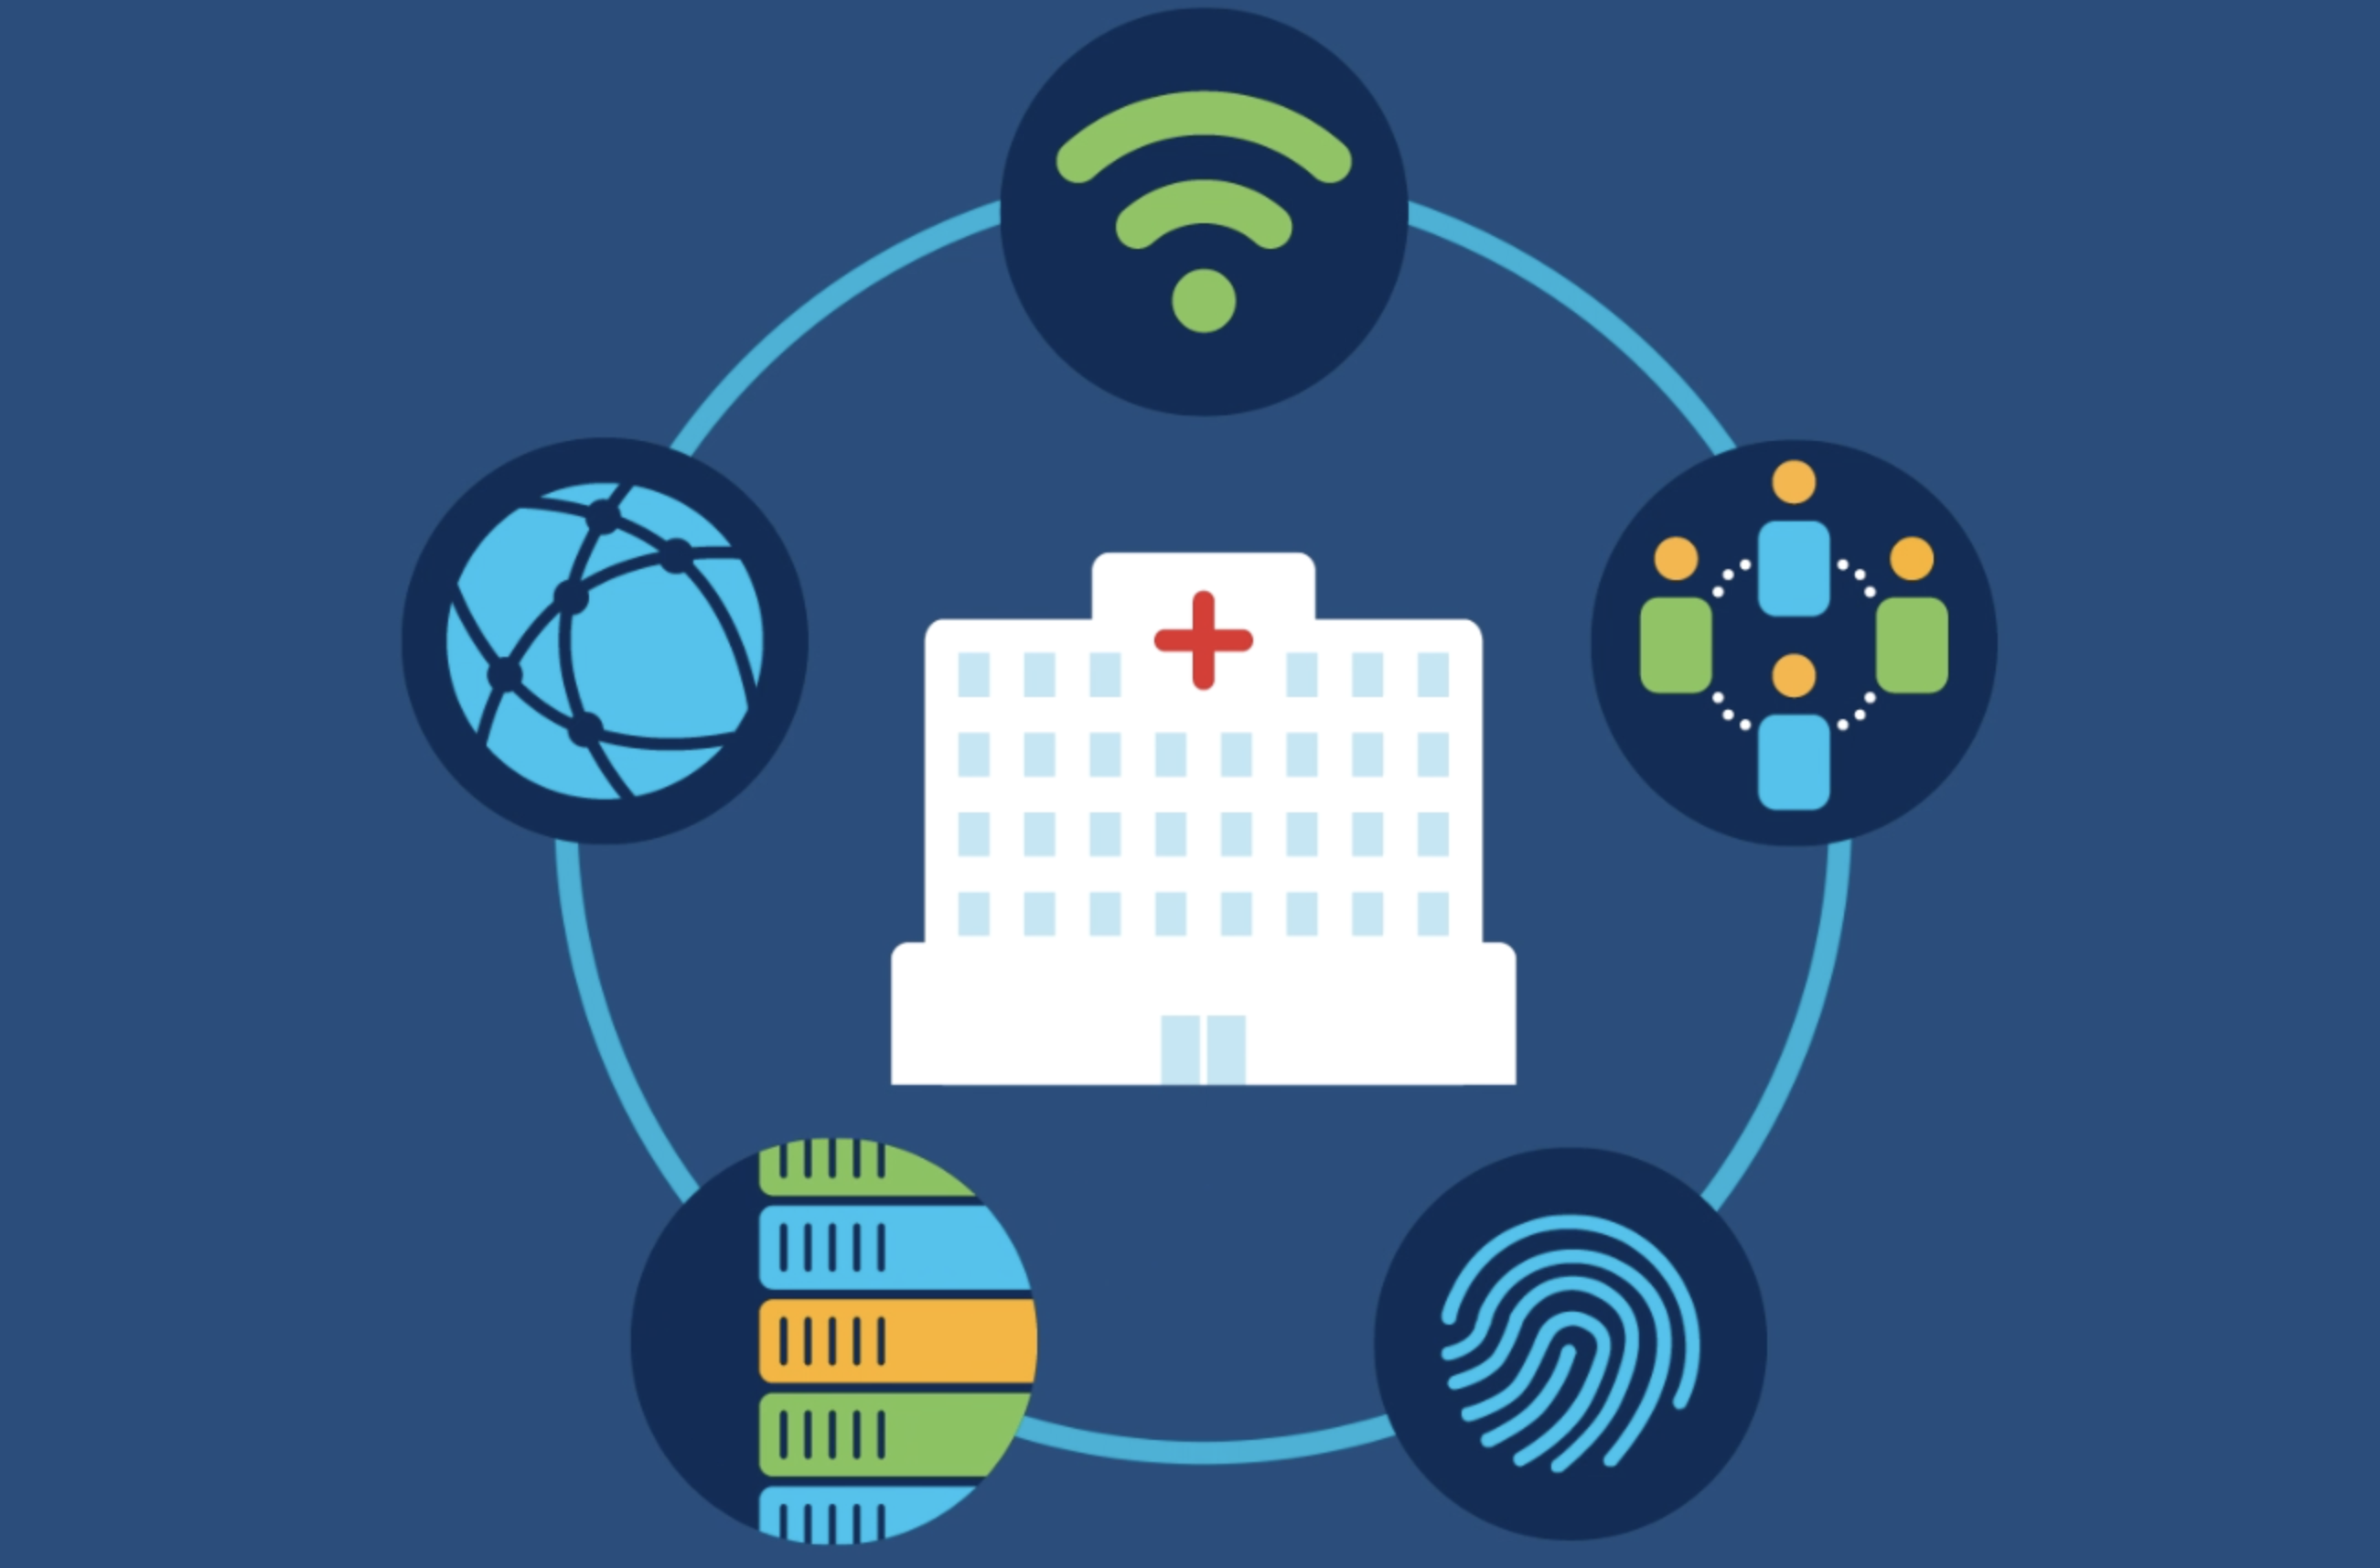 The future of healthcare is connected